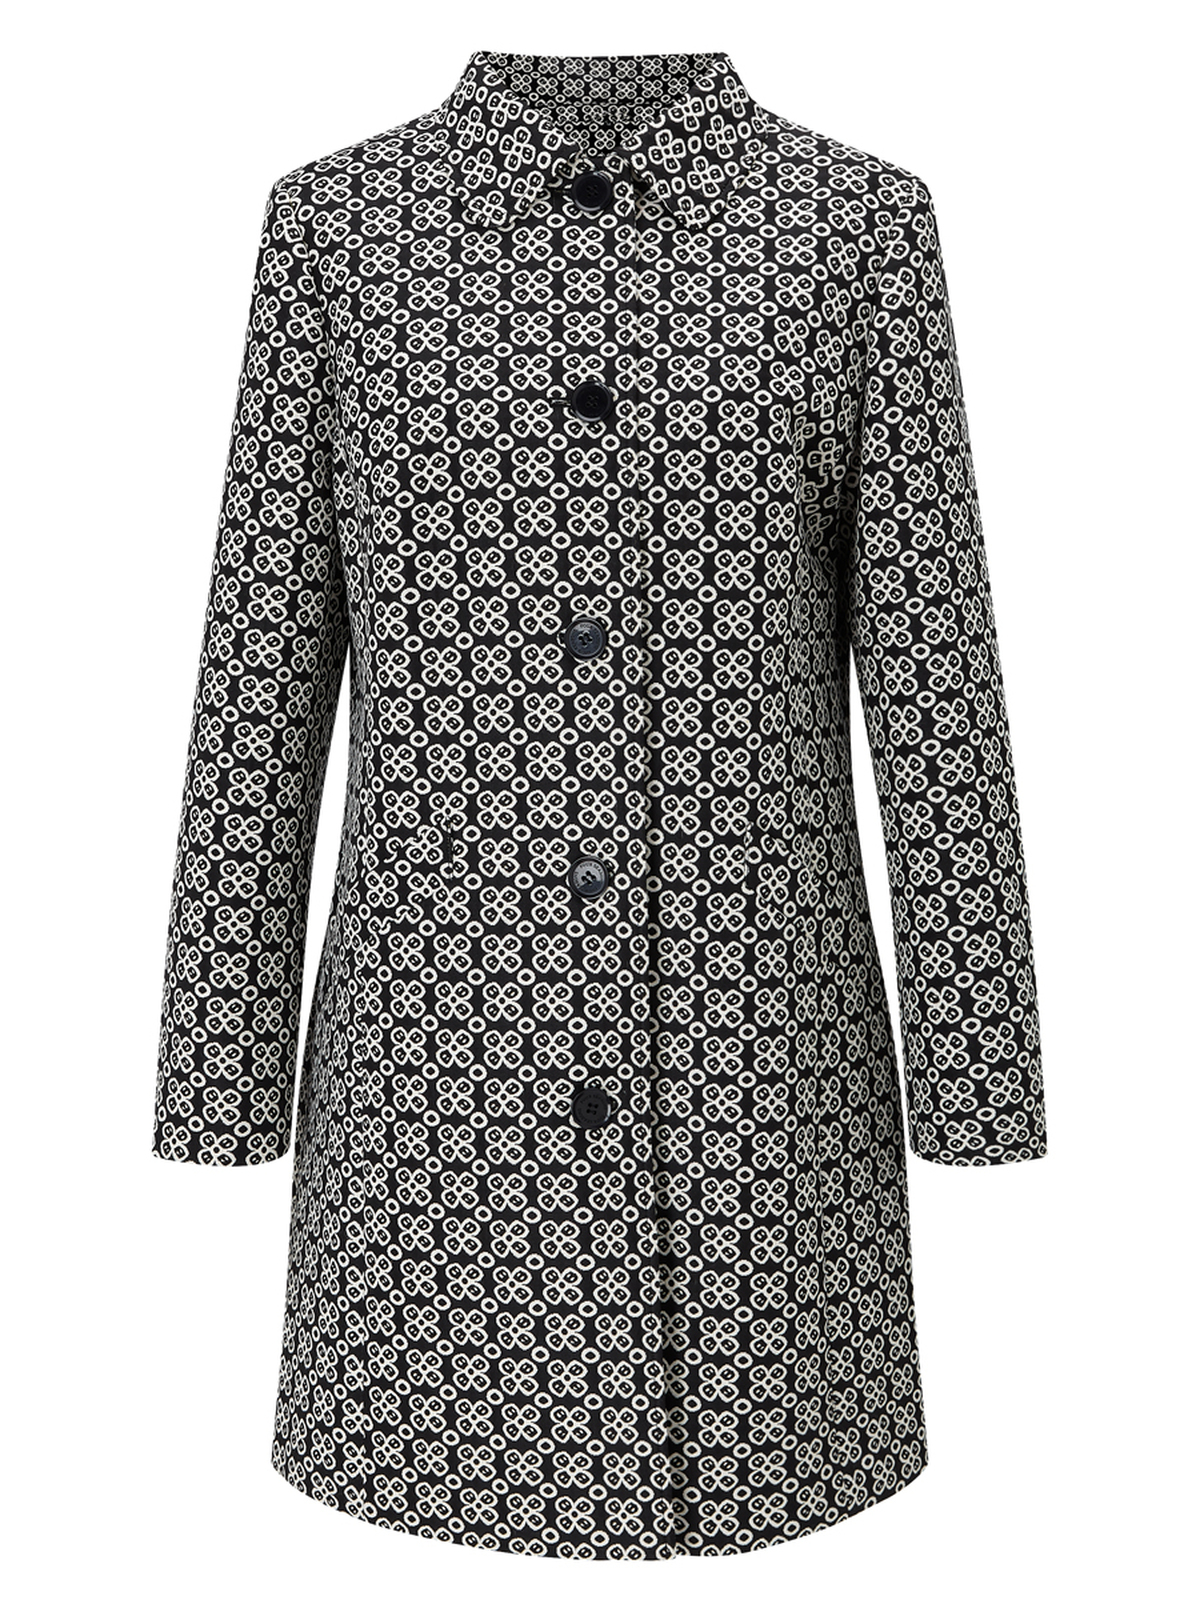 PEARTREE – Floral Single Breasted Coat, Black